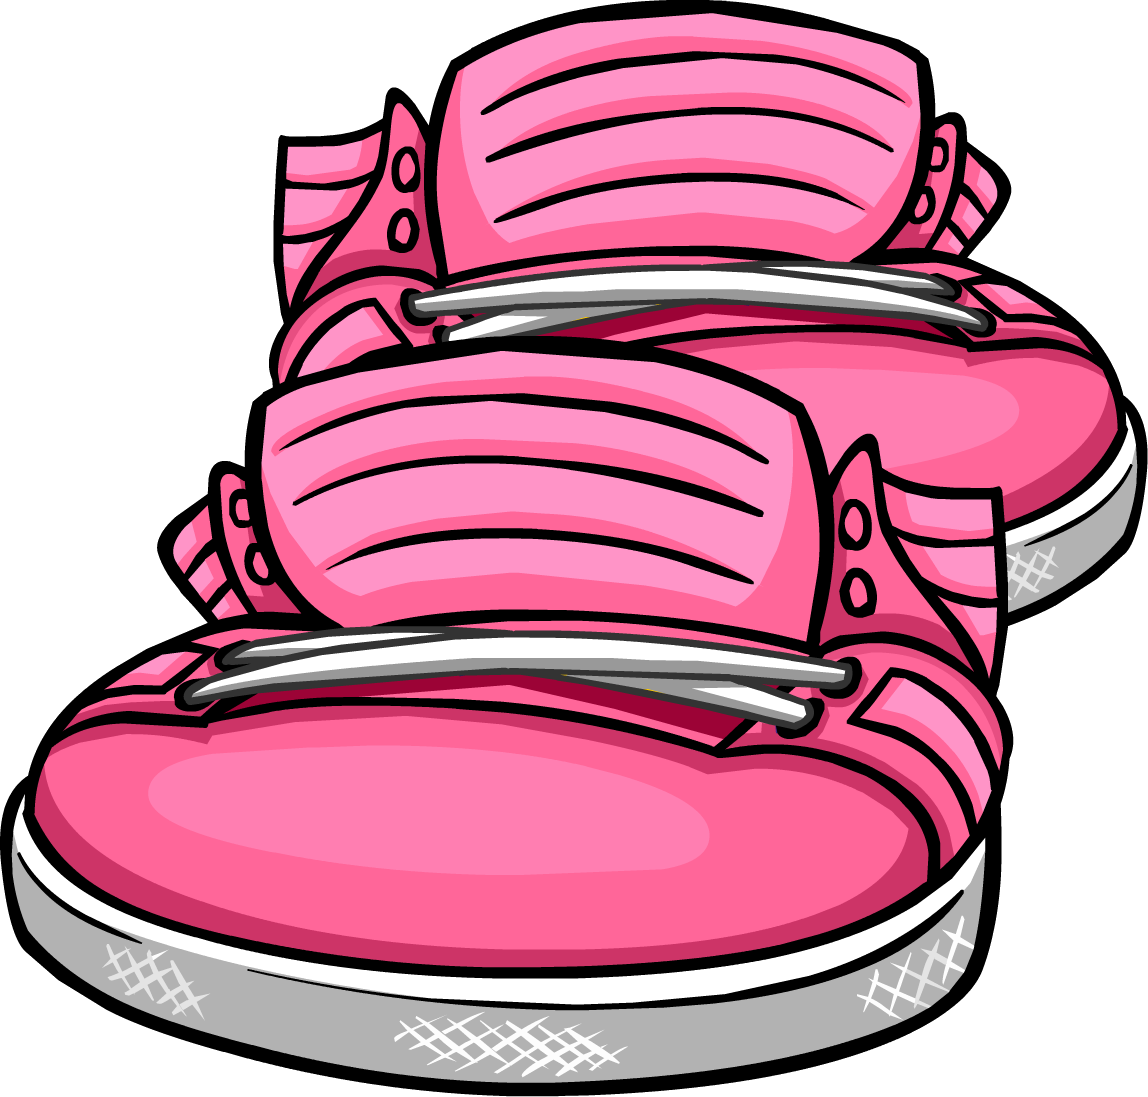 Dot clipart neon. Image pink sneakers icon